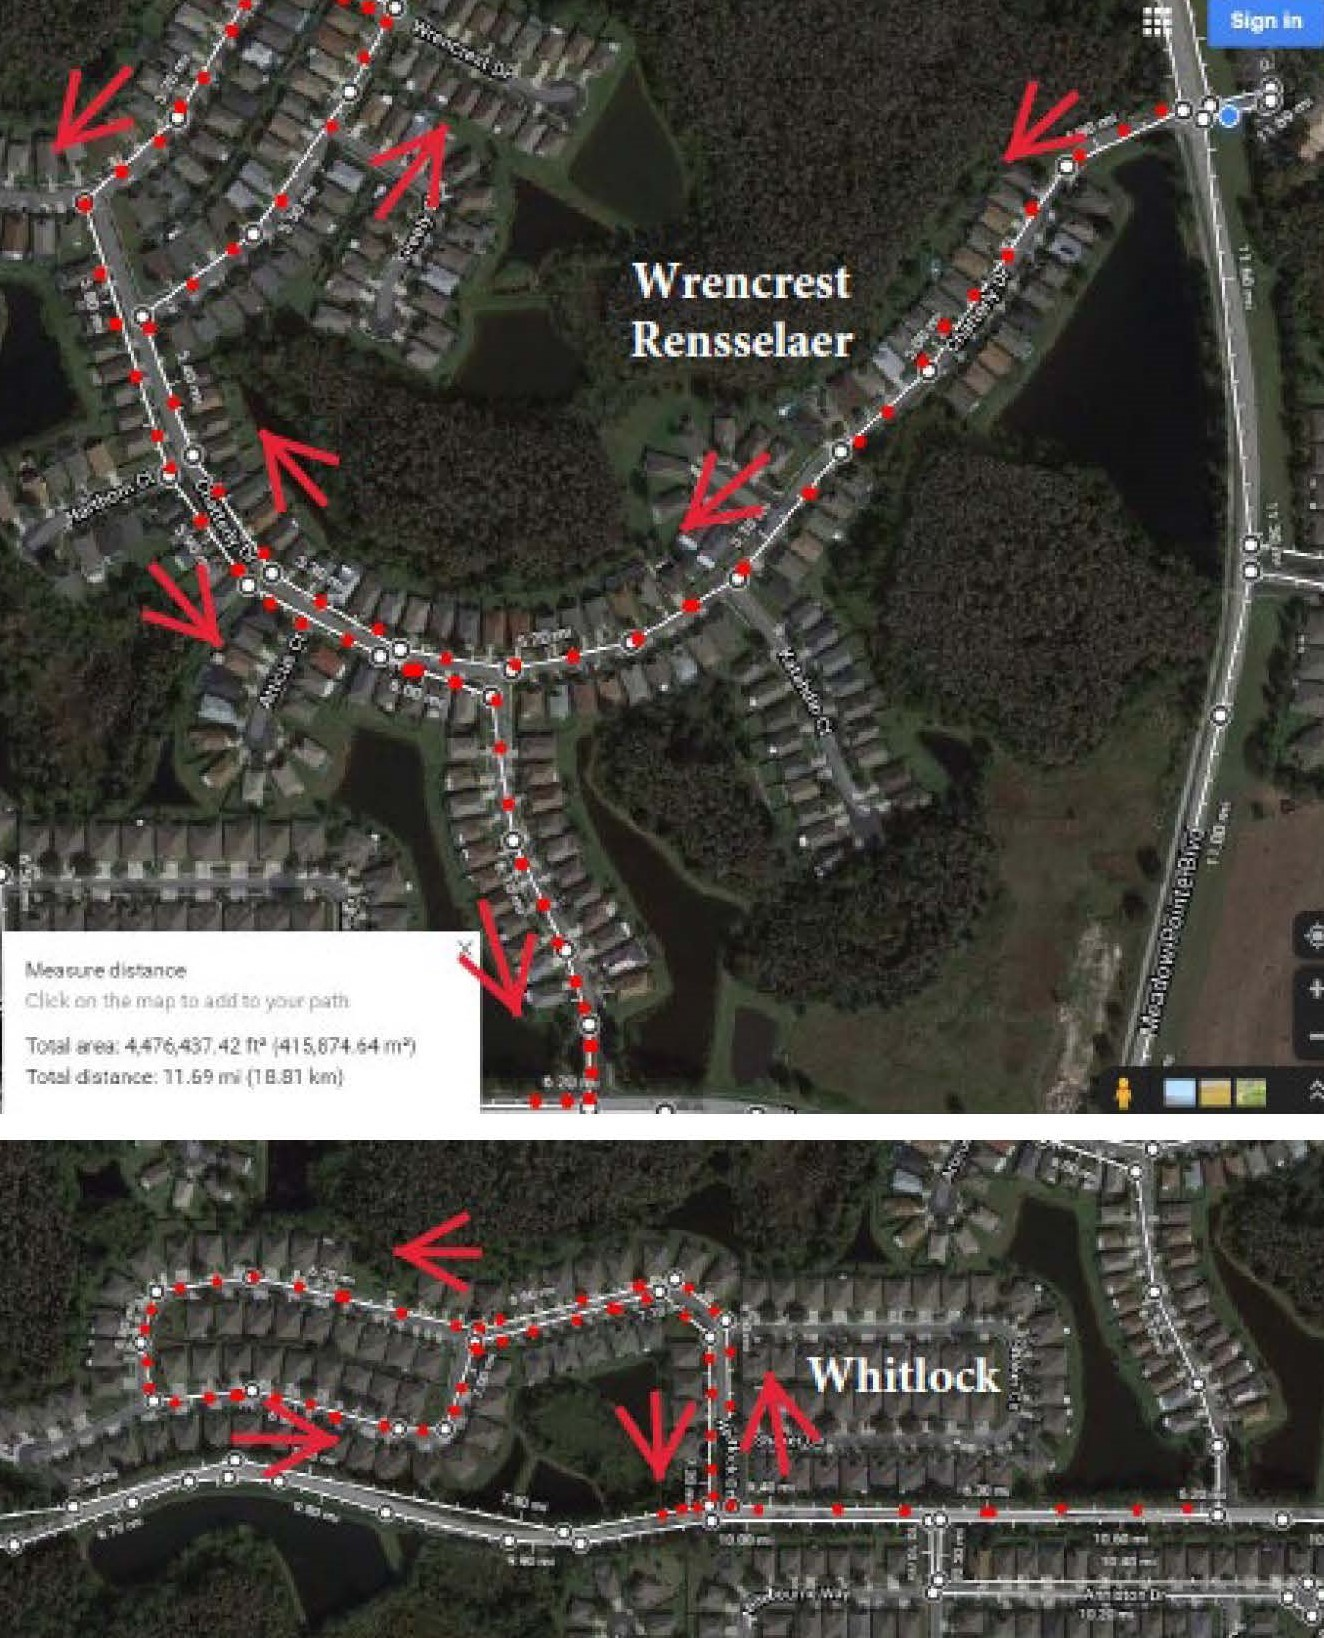 Wrencrest/Rensselaer and Whitlock Route